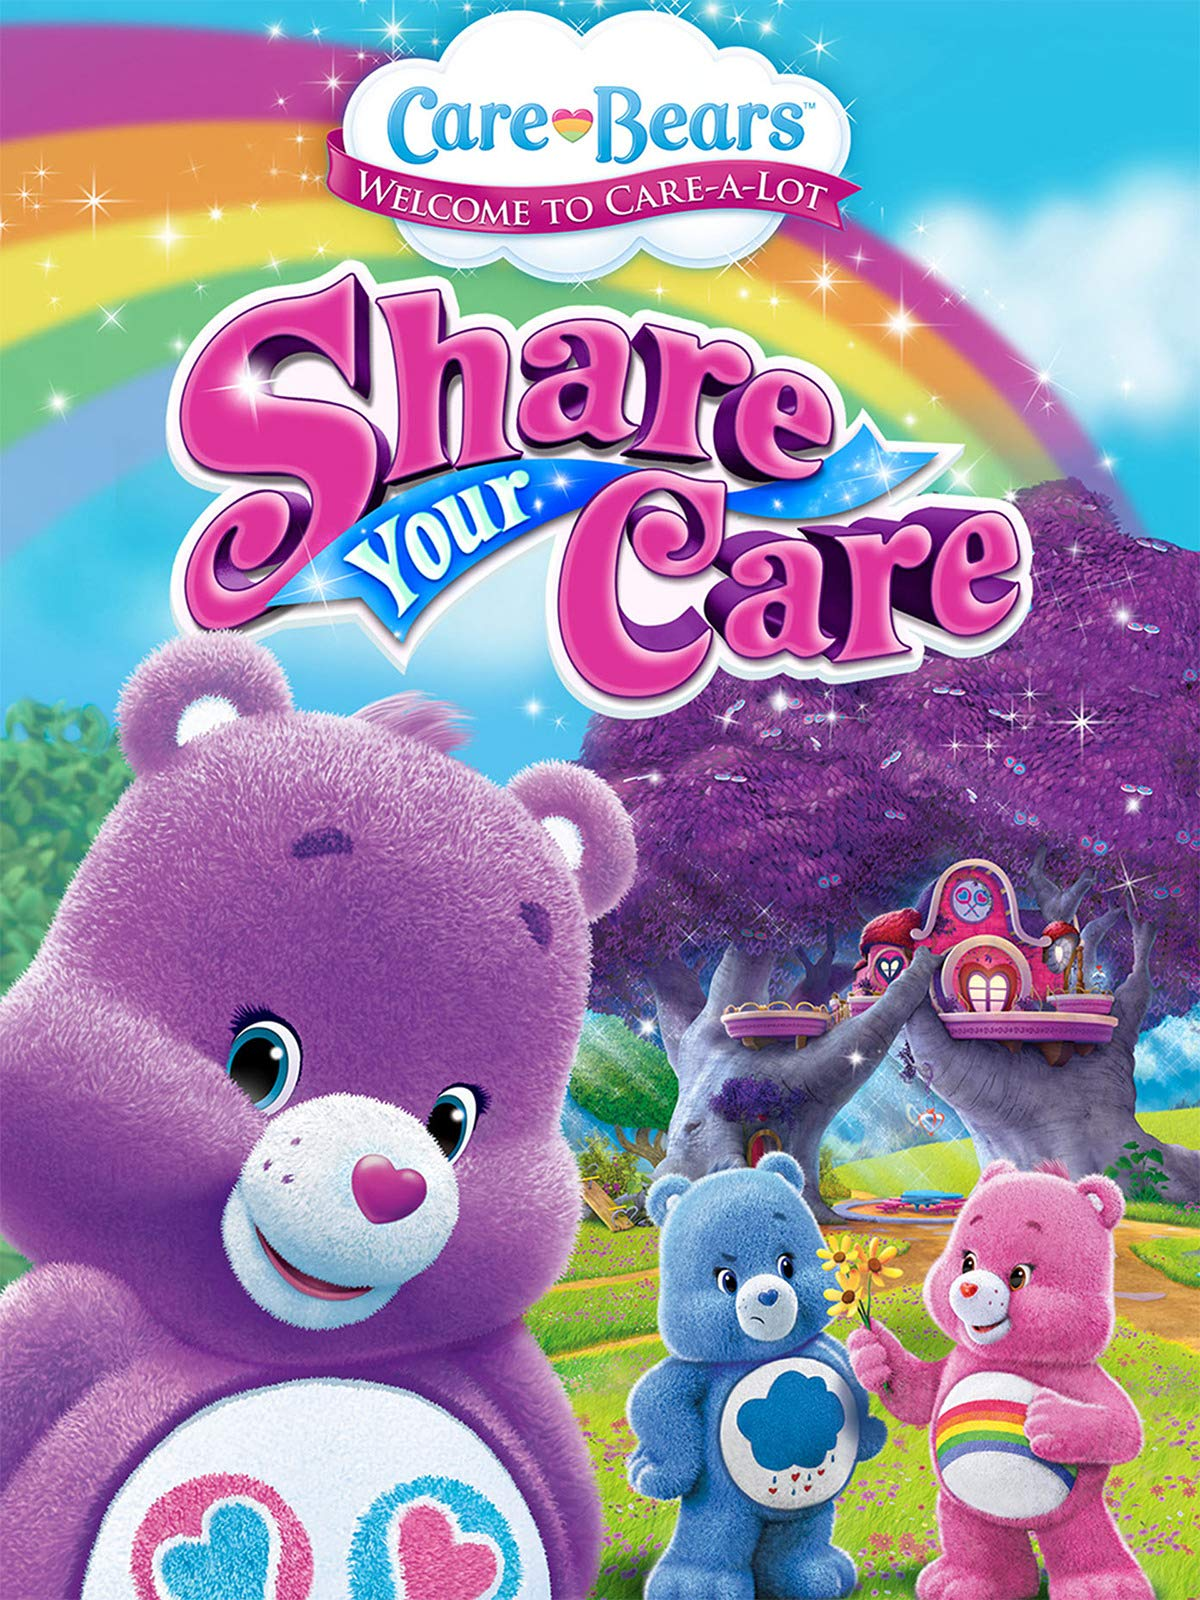 Care Bears: Share Your Care on Amazon Prime Instant Video UK